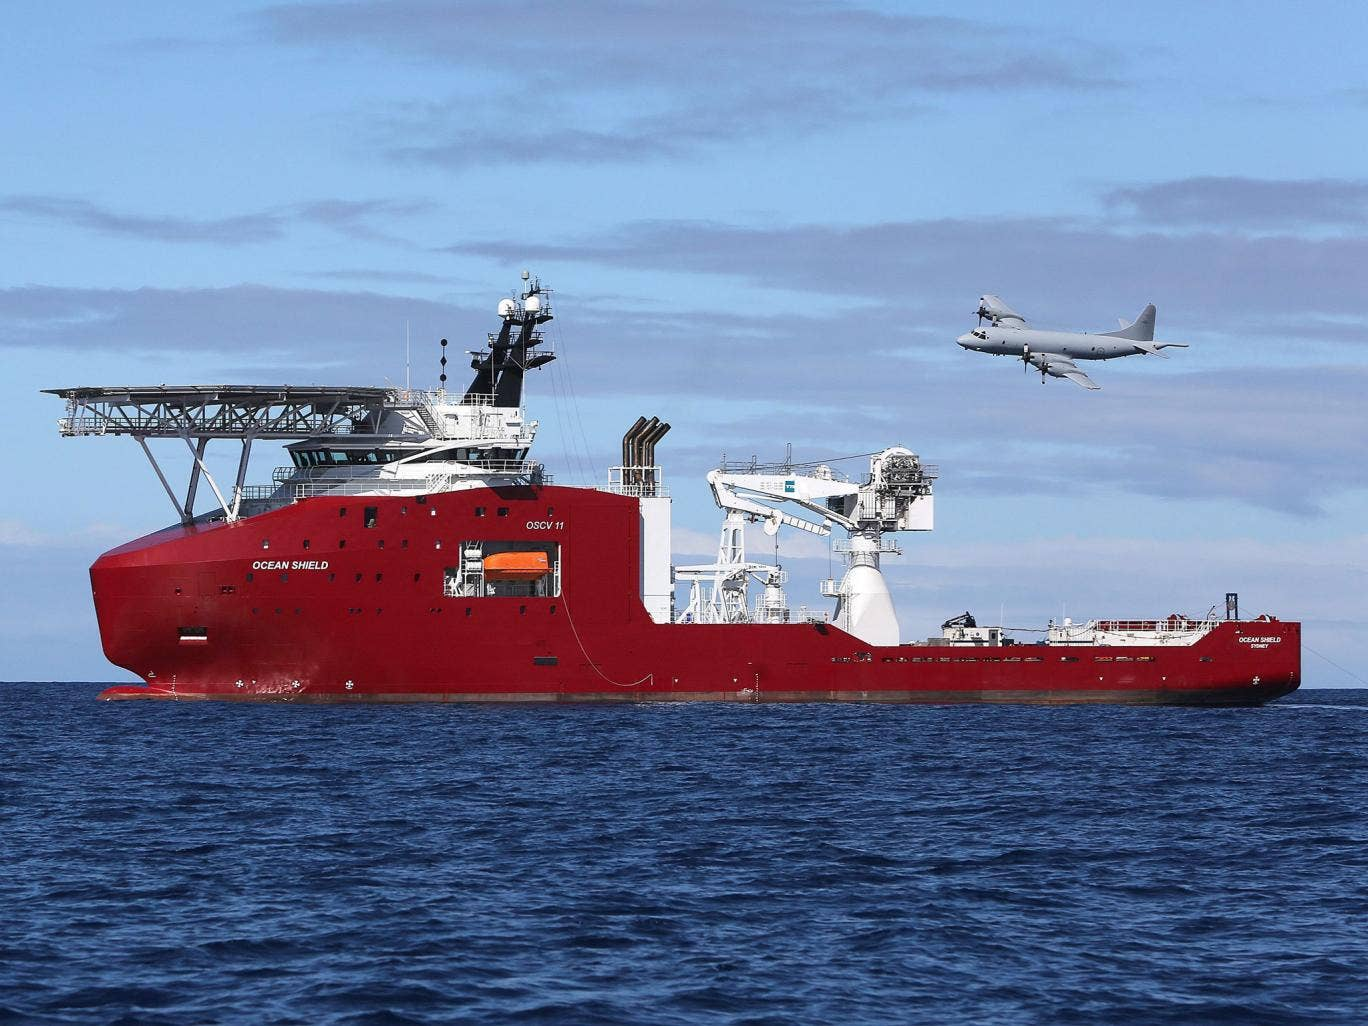 A Royal Australian Air Force AP-3C Orion fly past the Australian Defence Vessel Ocean Shield on a mission to drop sonar buoys to assist in the acoustic search in support of Operation Southern Indian Ocean